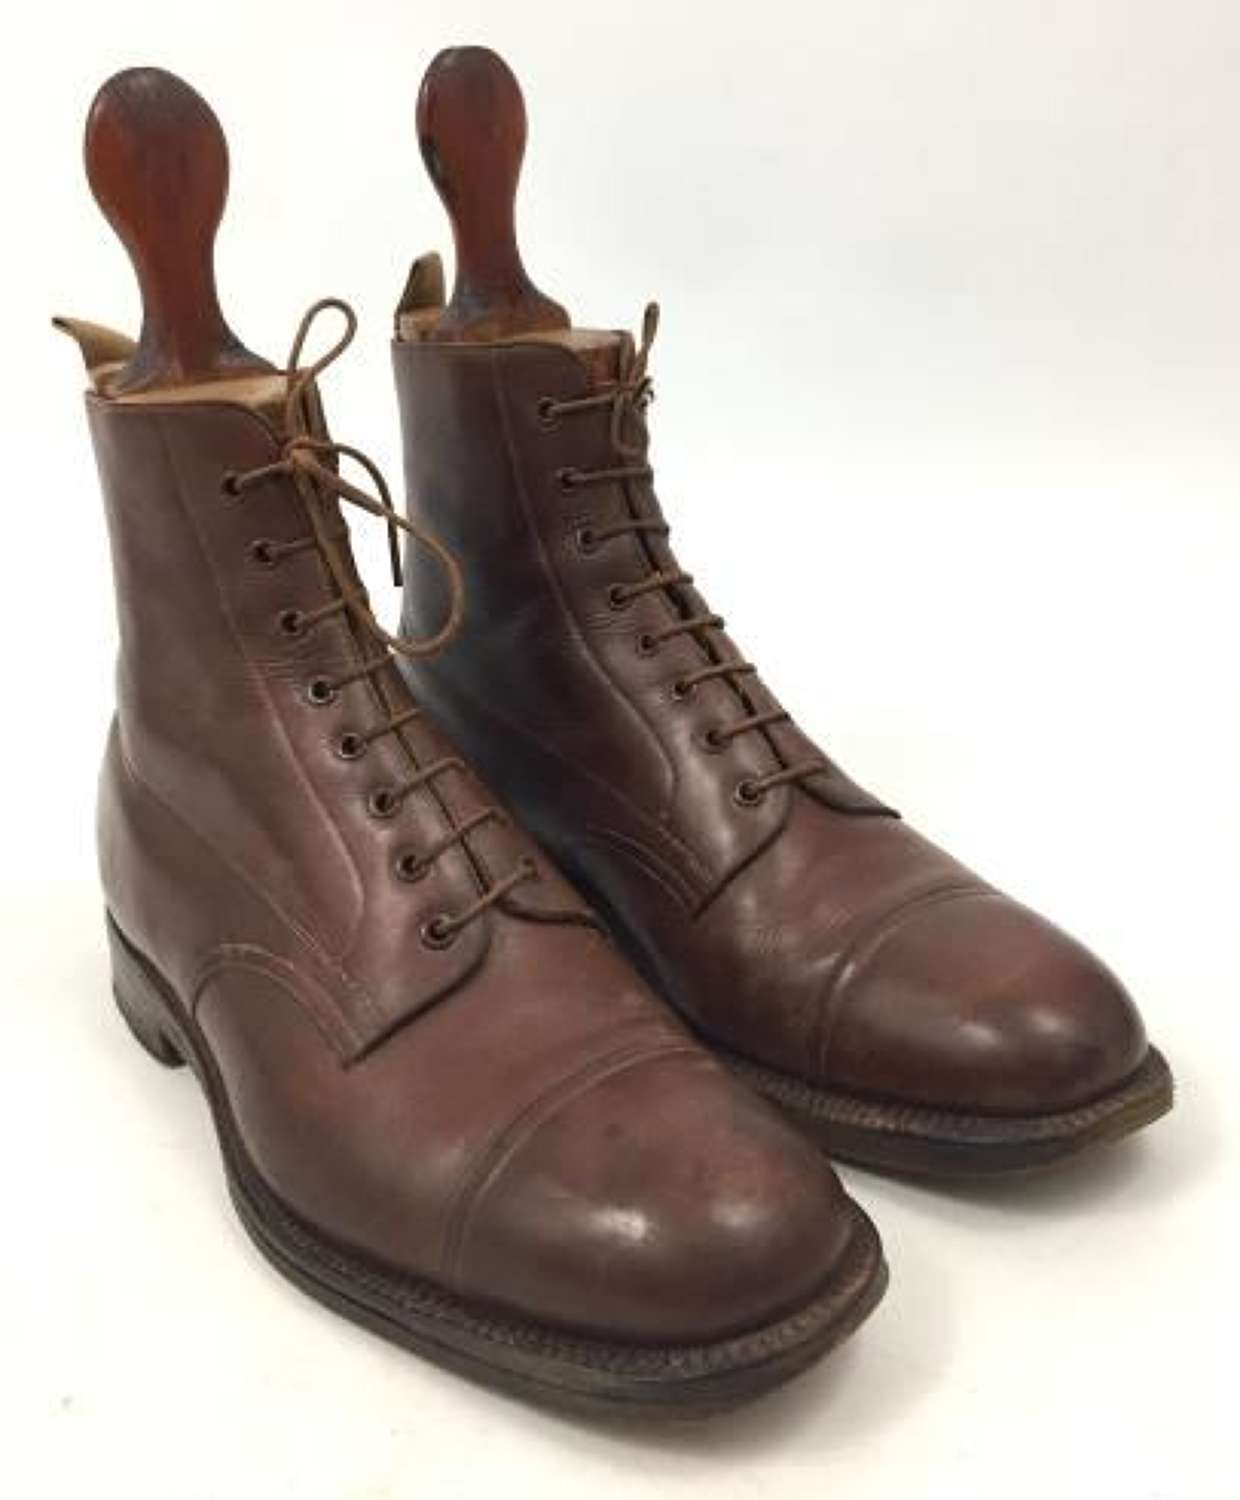 Original British Army Officers Bespoke Brown Leather Ankle Boots and Shoe Trees